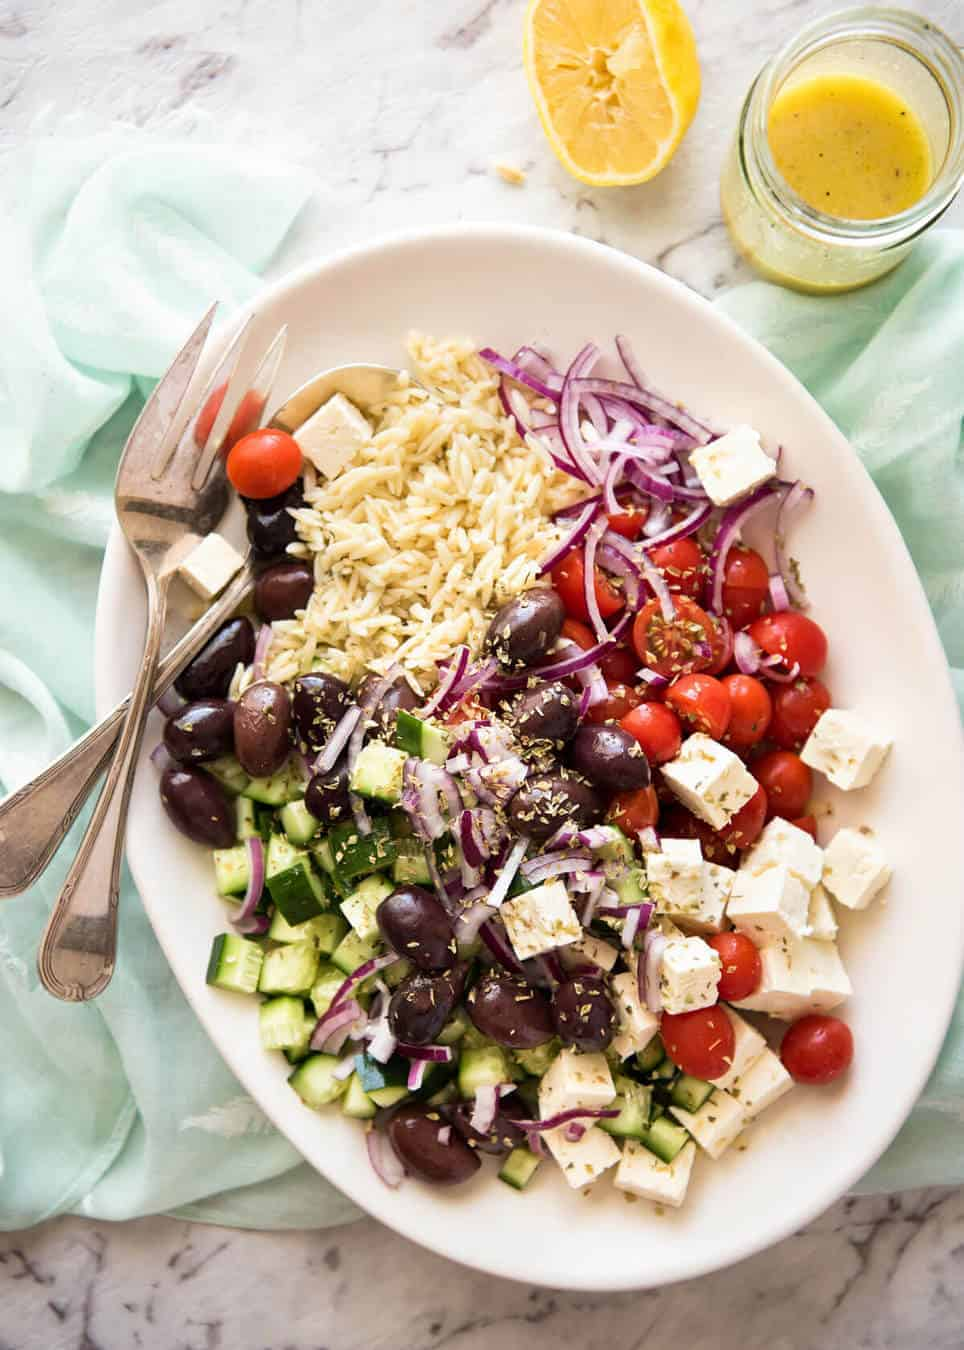 Greek Lemon Orzo Salad (Risoni) - All the fixings of a Greek Salad tossed through orzo / risoni and dressed with a gorgeous zesty lemon vinaigrette. www.recipetineats.com